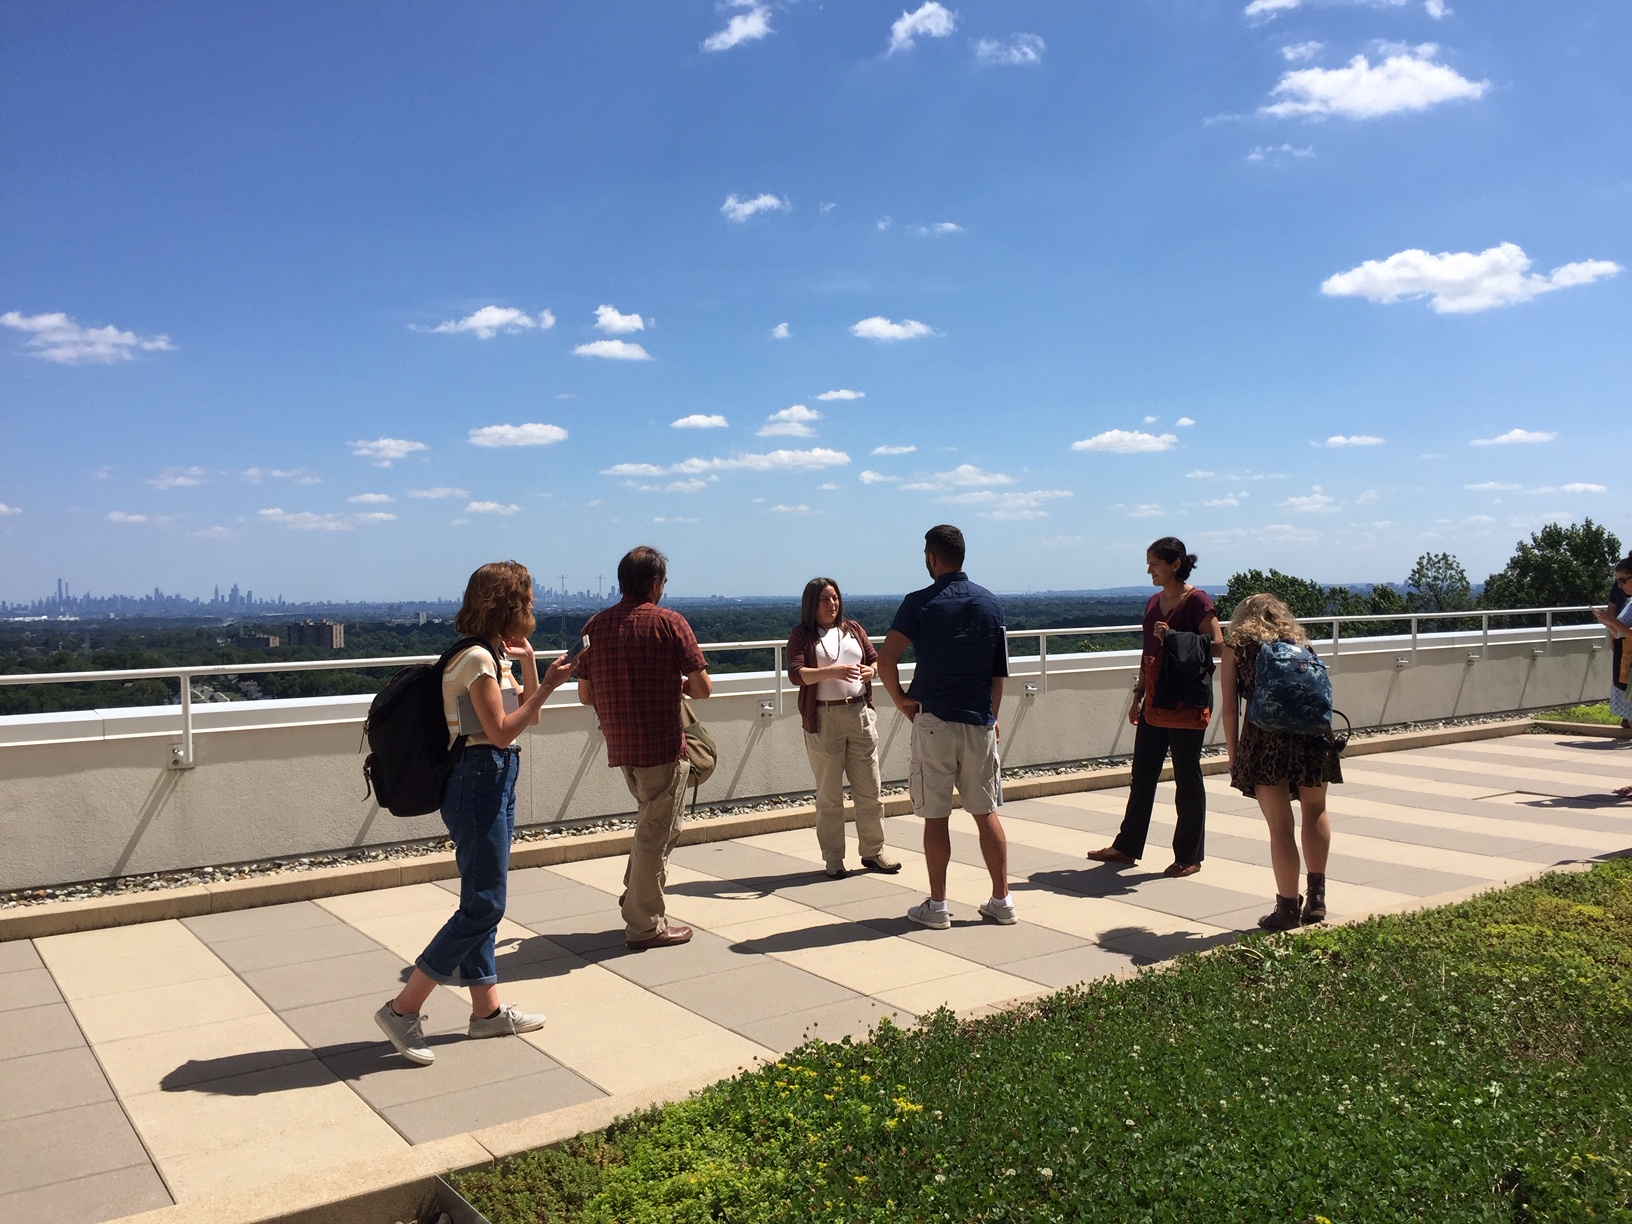 The NJ Sustainability Reporting Fellows began their orientation at Montclair State University - Photo by Donna Liu.